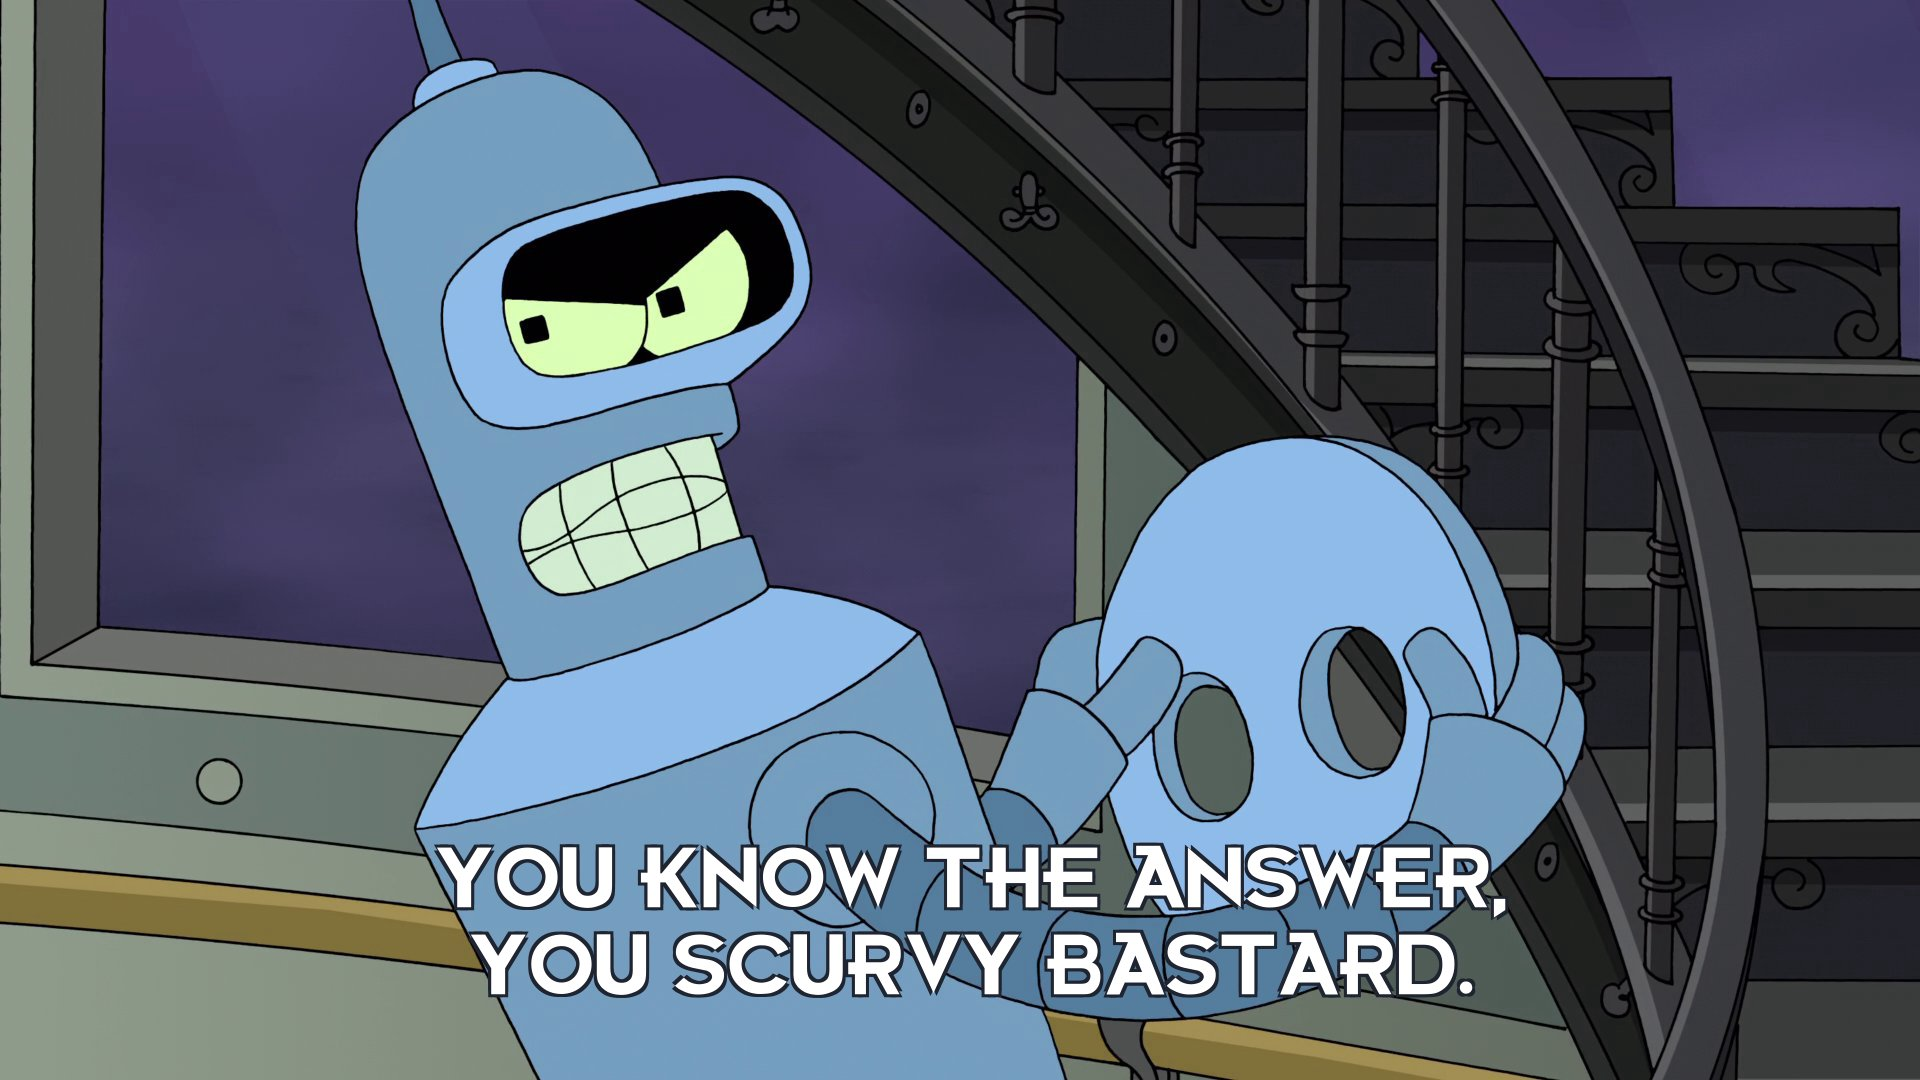 Bender Bending Rodriguez: You know the answer, you scurvy bastard.